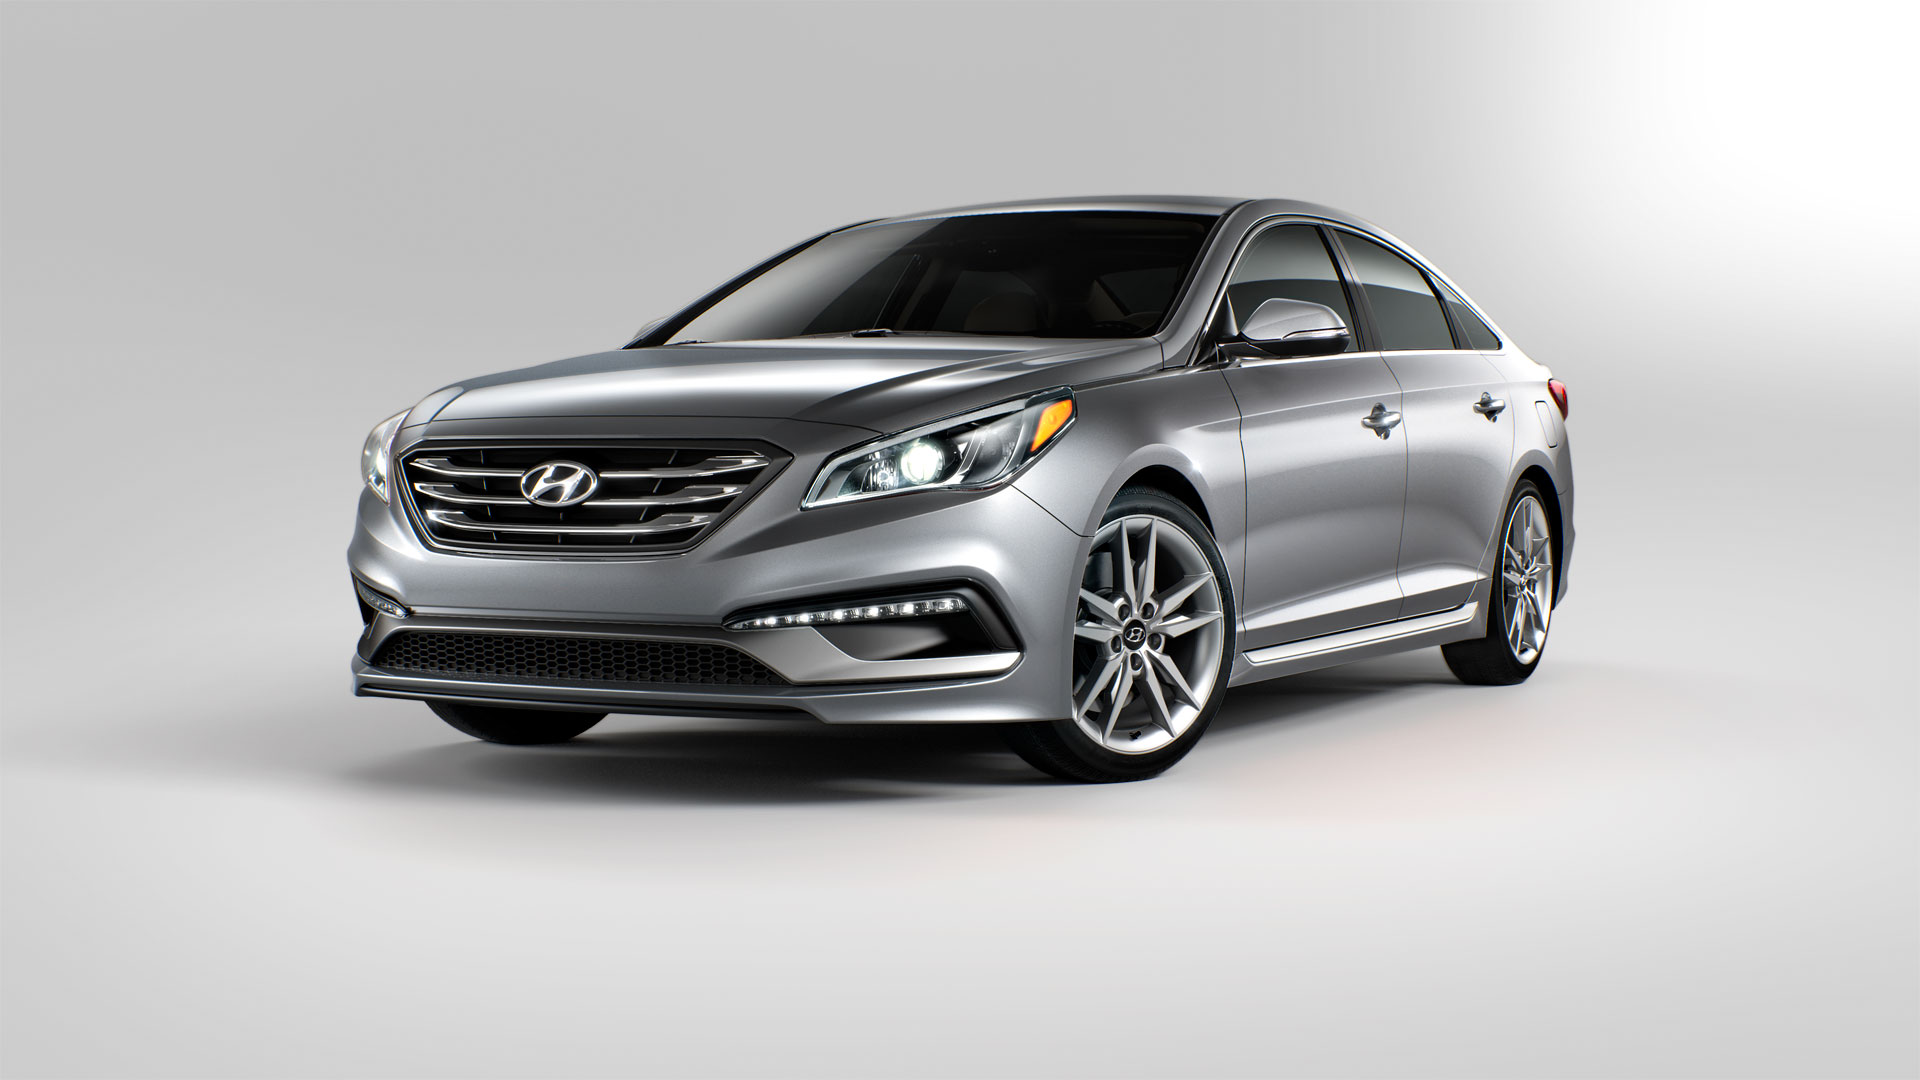 2015 hyundai sonata photos informations articles. Black Bedroom Furniture Sets. Home Design Ideas